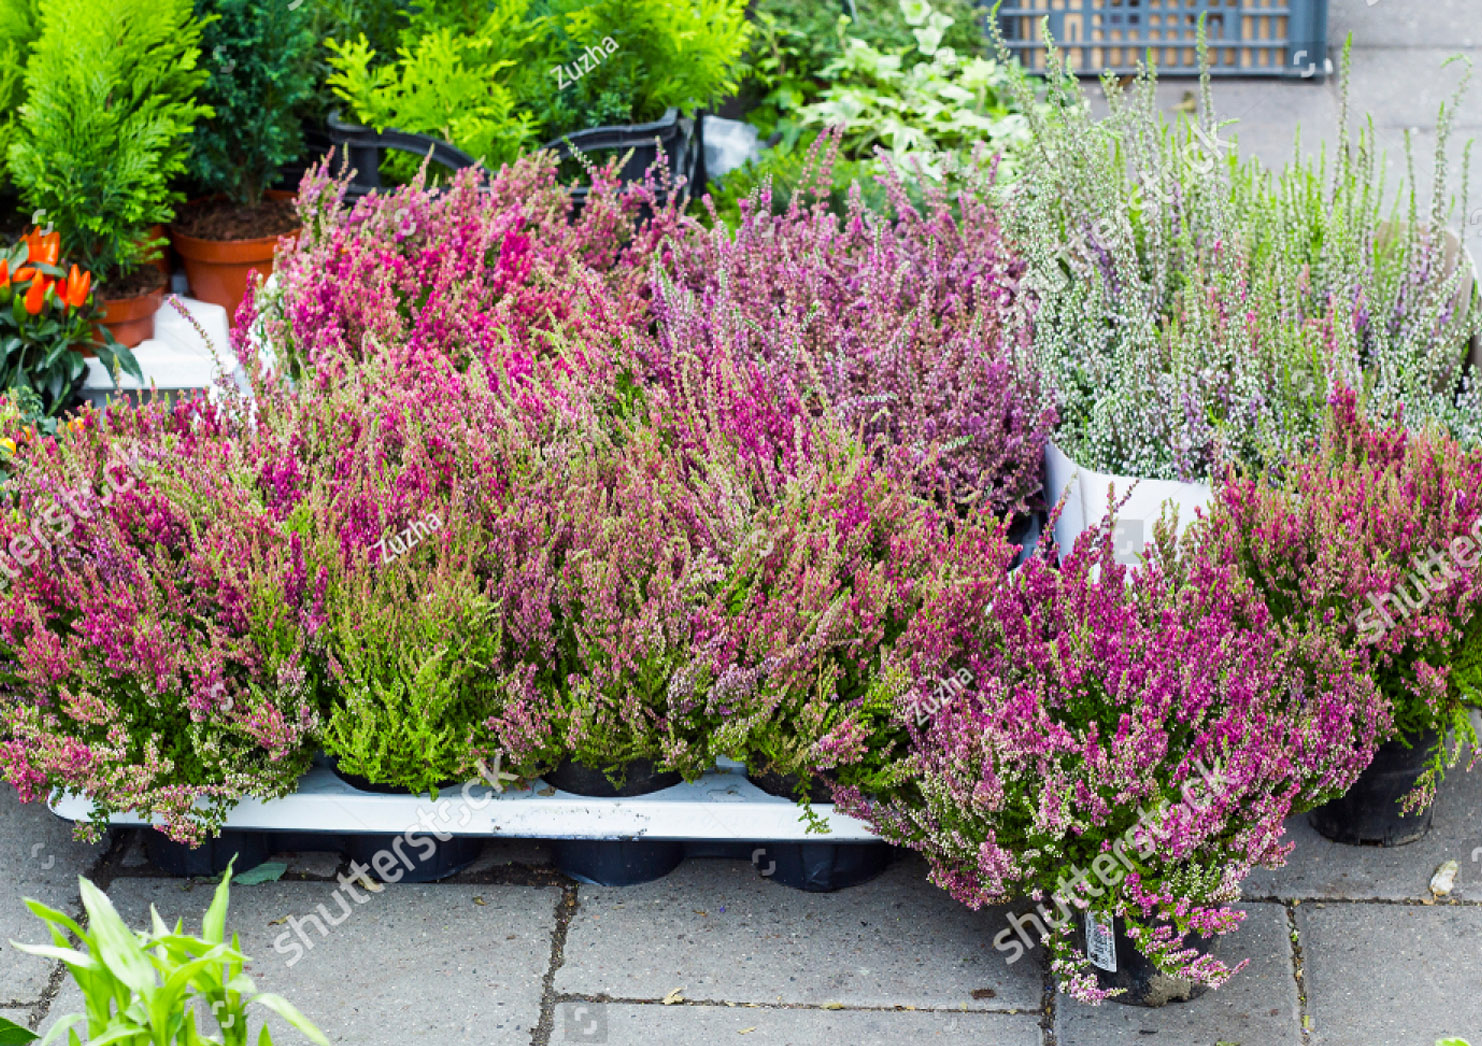 stock-photo-calluna-vulgaris-flowers-in-pots-sold-in-garden-center-known-as-common-heather-ling-or-simply-1013015476_klein